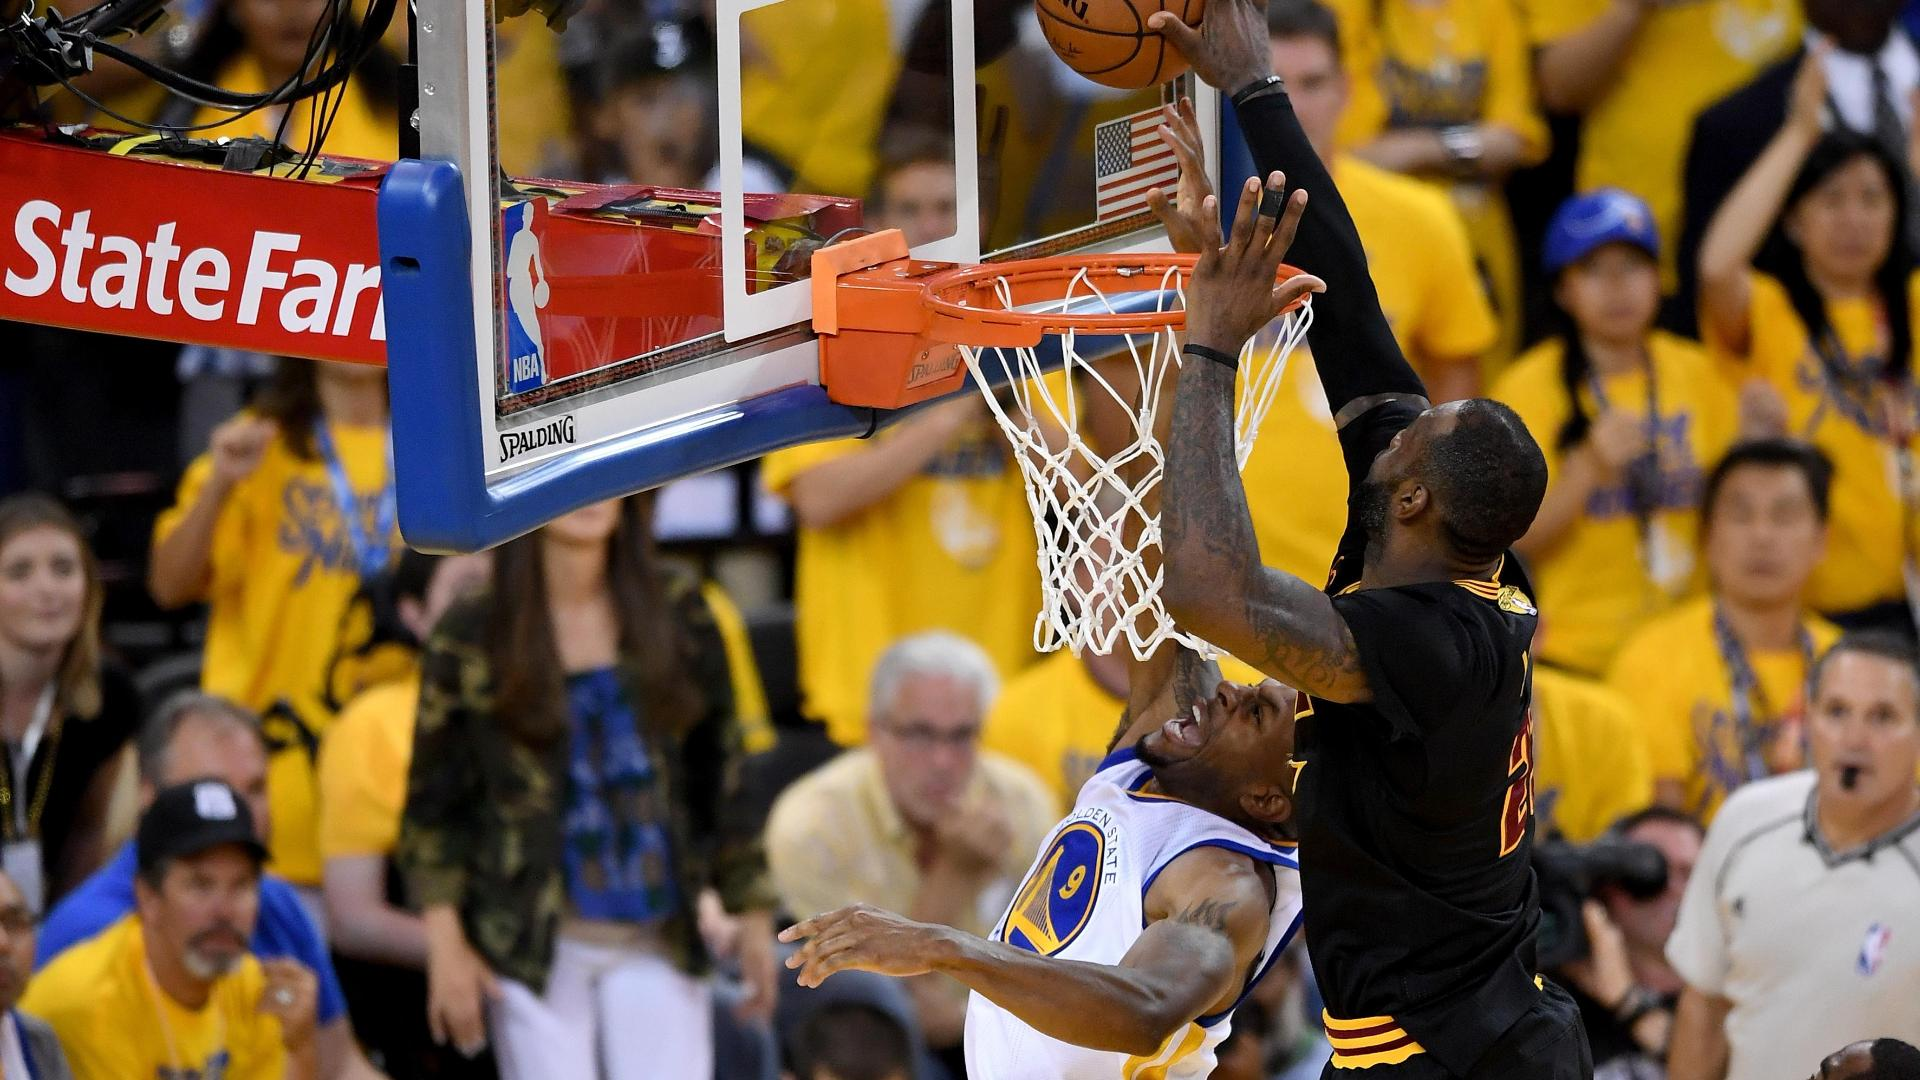 Andre Iguodala on Finals block: 'If J.R. is not there, I'm dunking it'